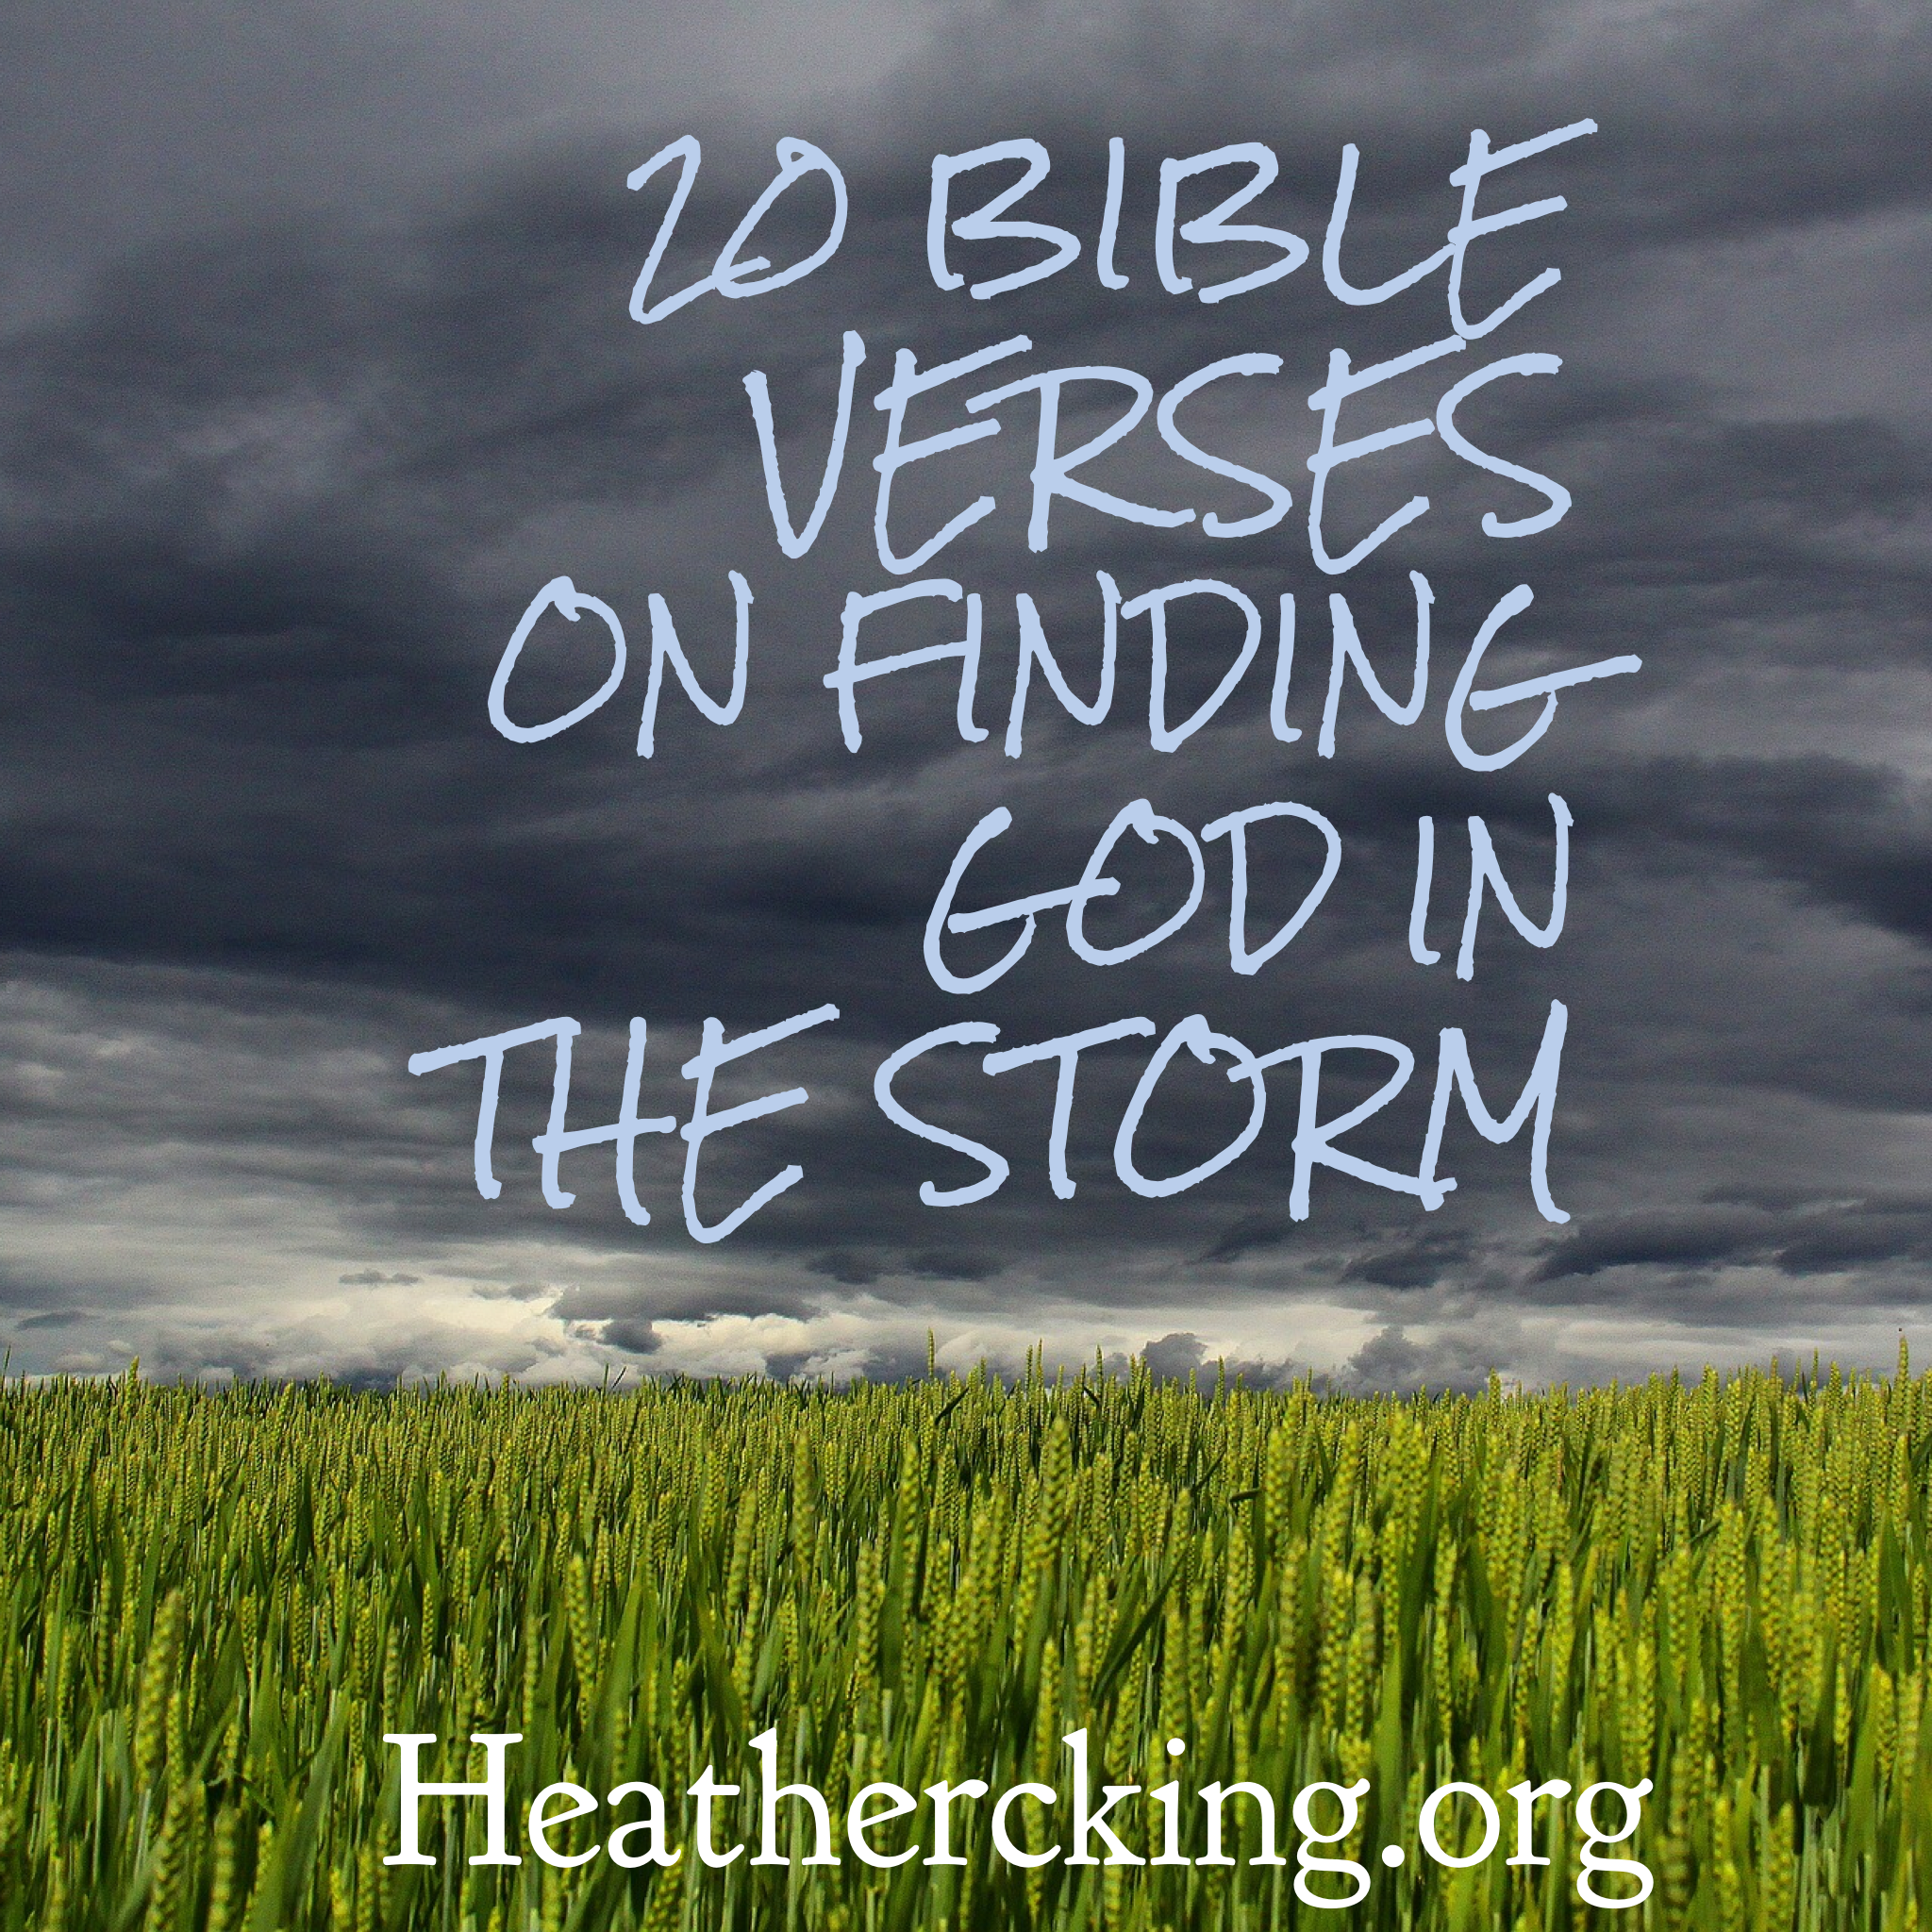 20 Bible Verses on Finding God in the Storm – Heather C